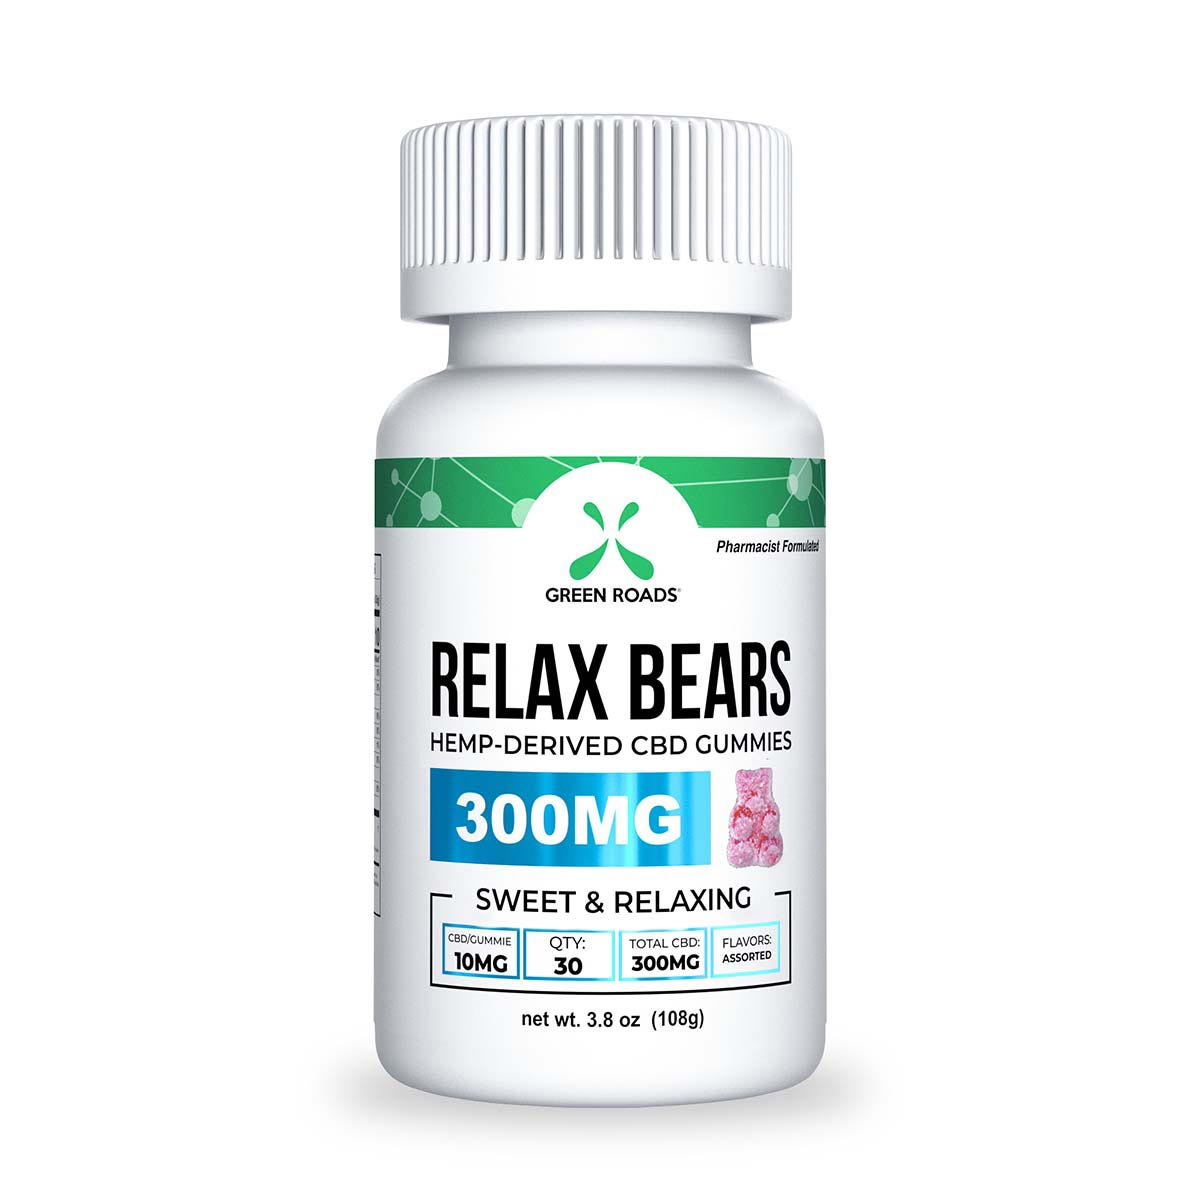 Relax Bears - CBD Gummy Bears - 300 mg